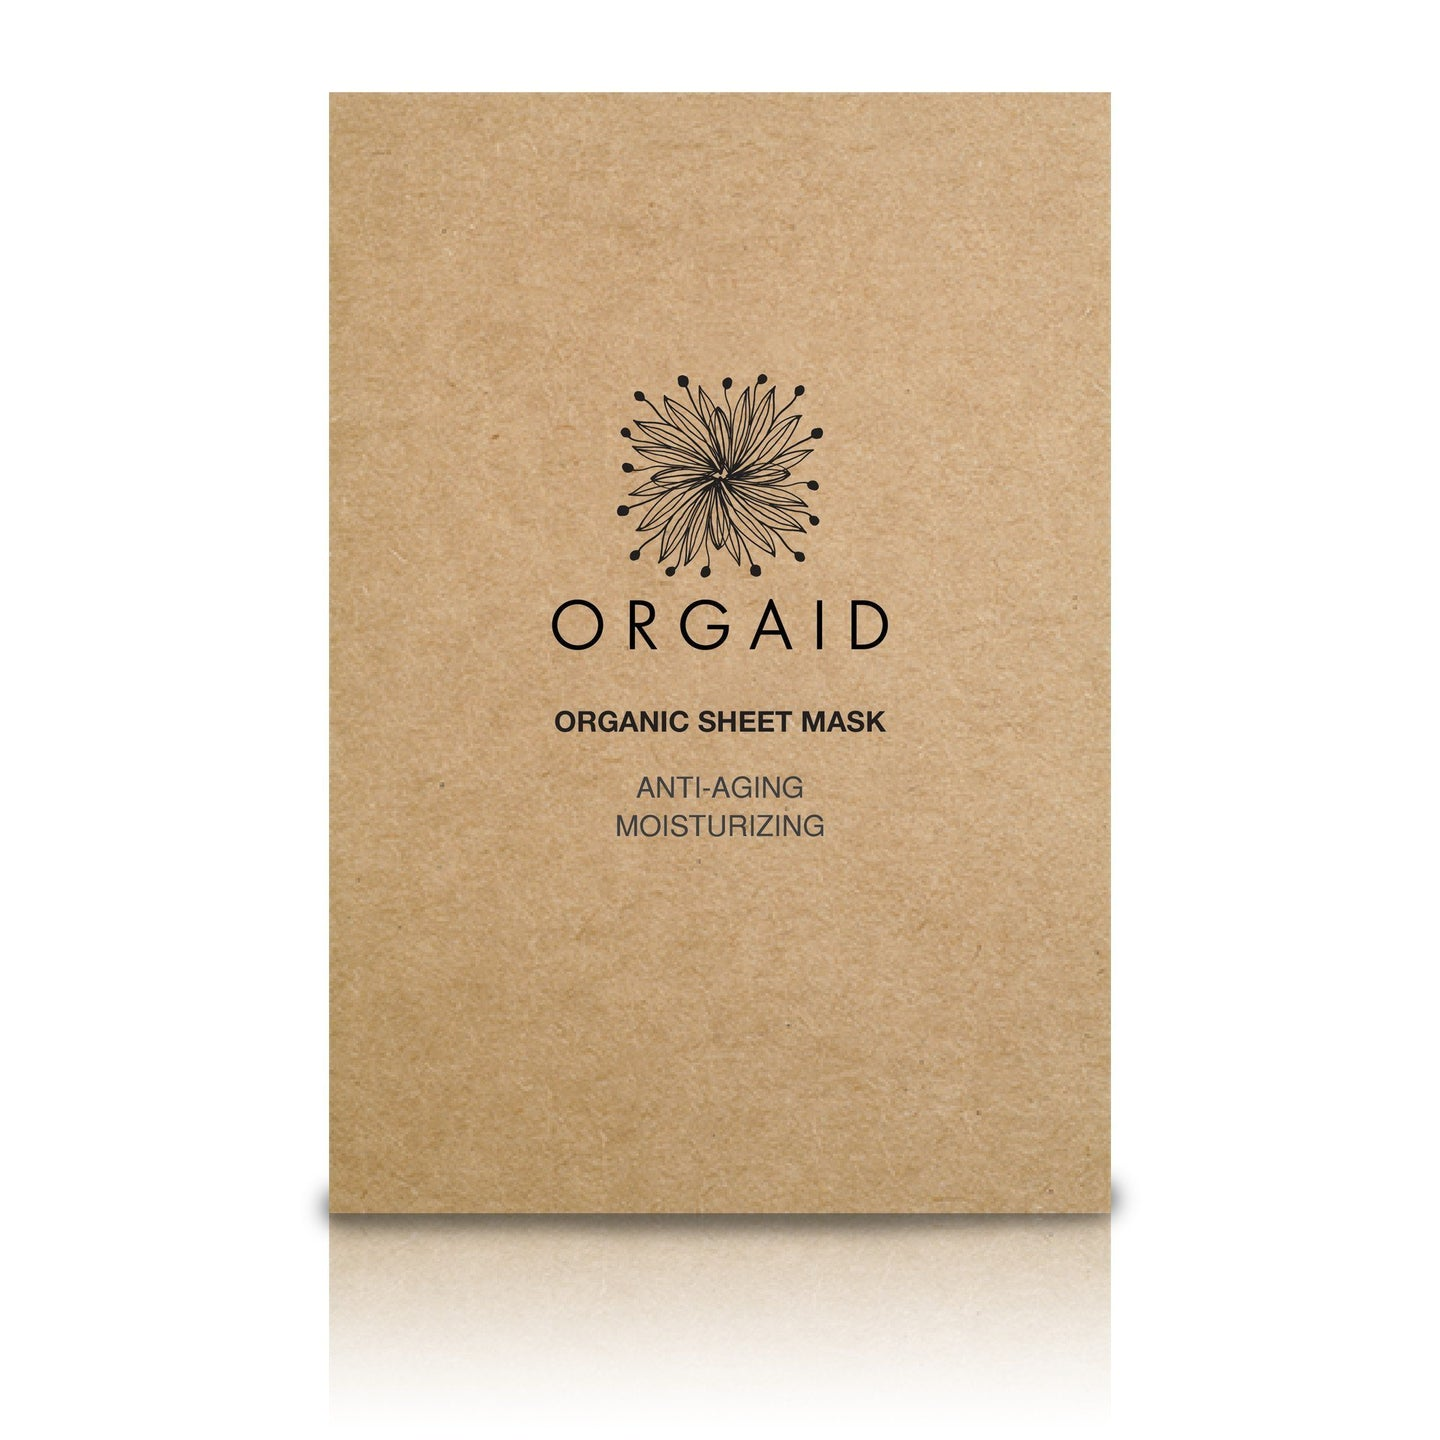 Orgaid Antiaging & Moisturizing Single Sheet Masks - Switch 2 Pure